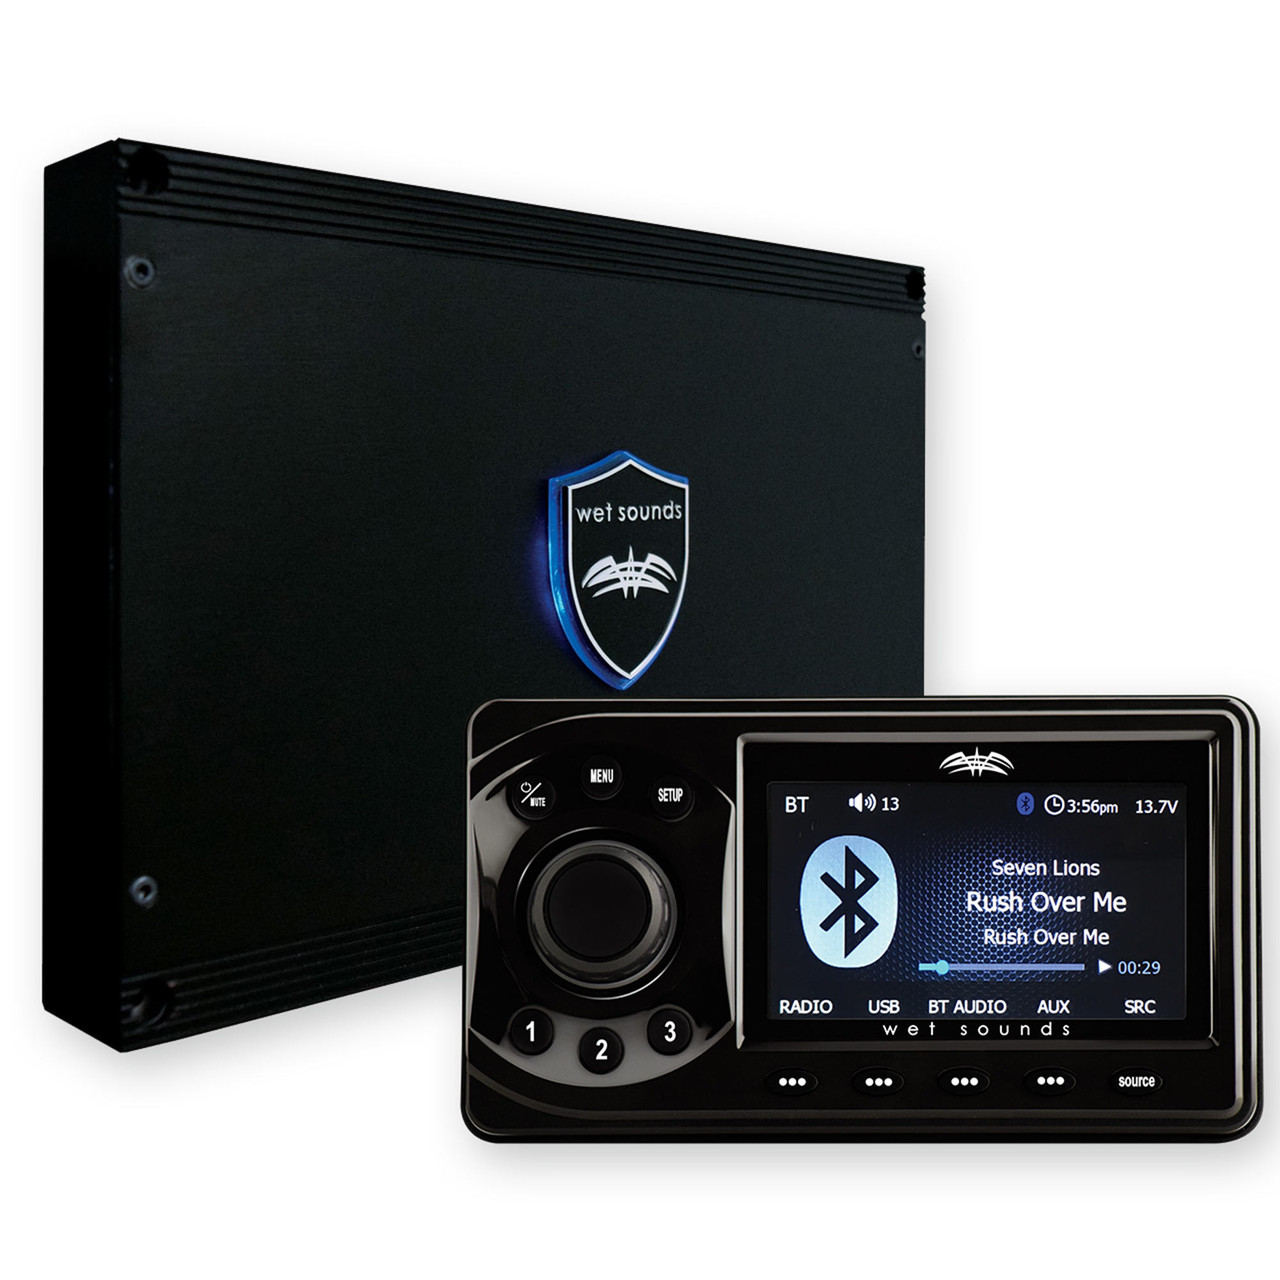 Wet Sounds Ws Mc1 Marine Media System With Full Color Lcd Display Car Fuse Box Bluetooth 4 Zone Control Creative Audio